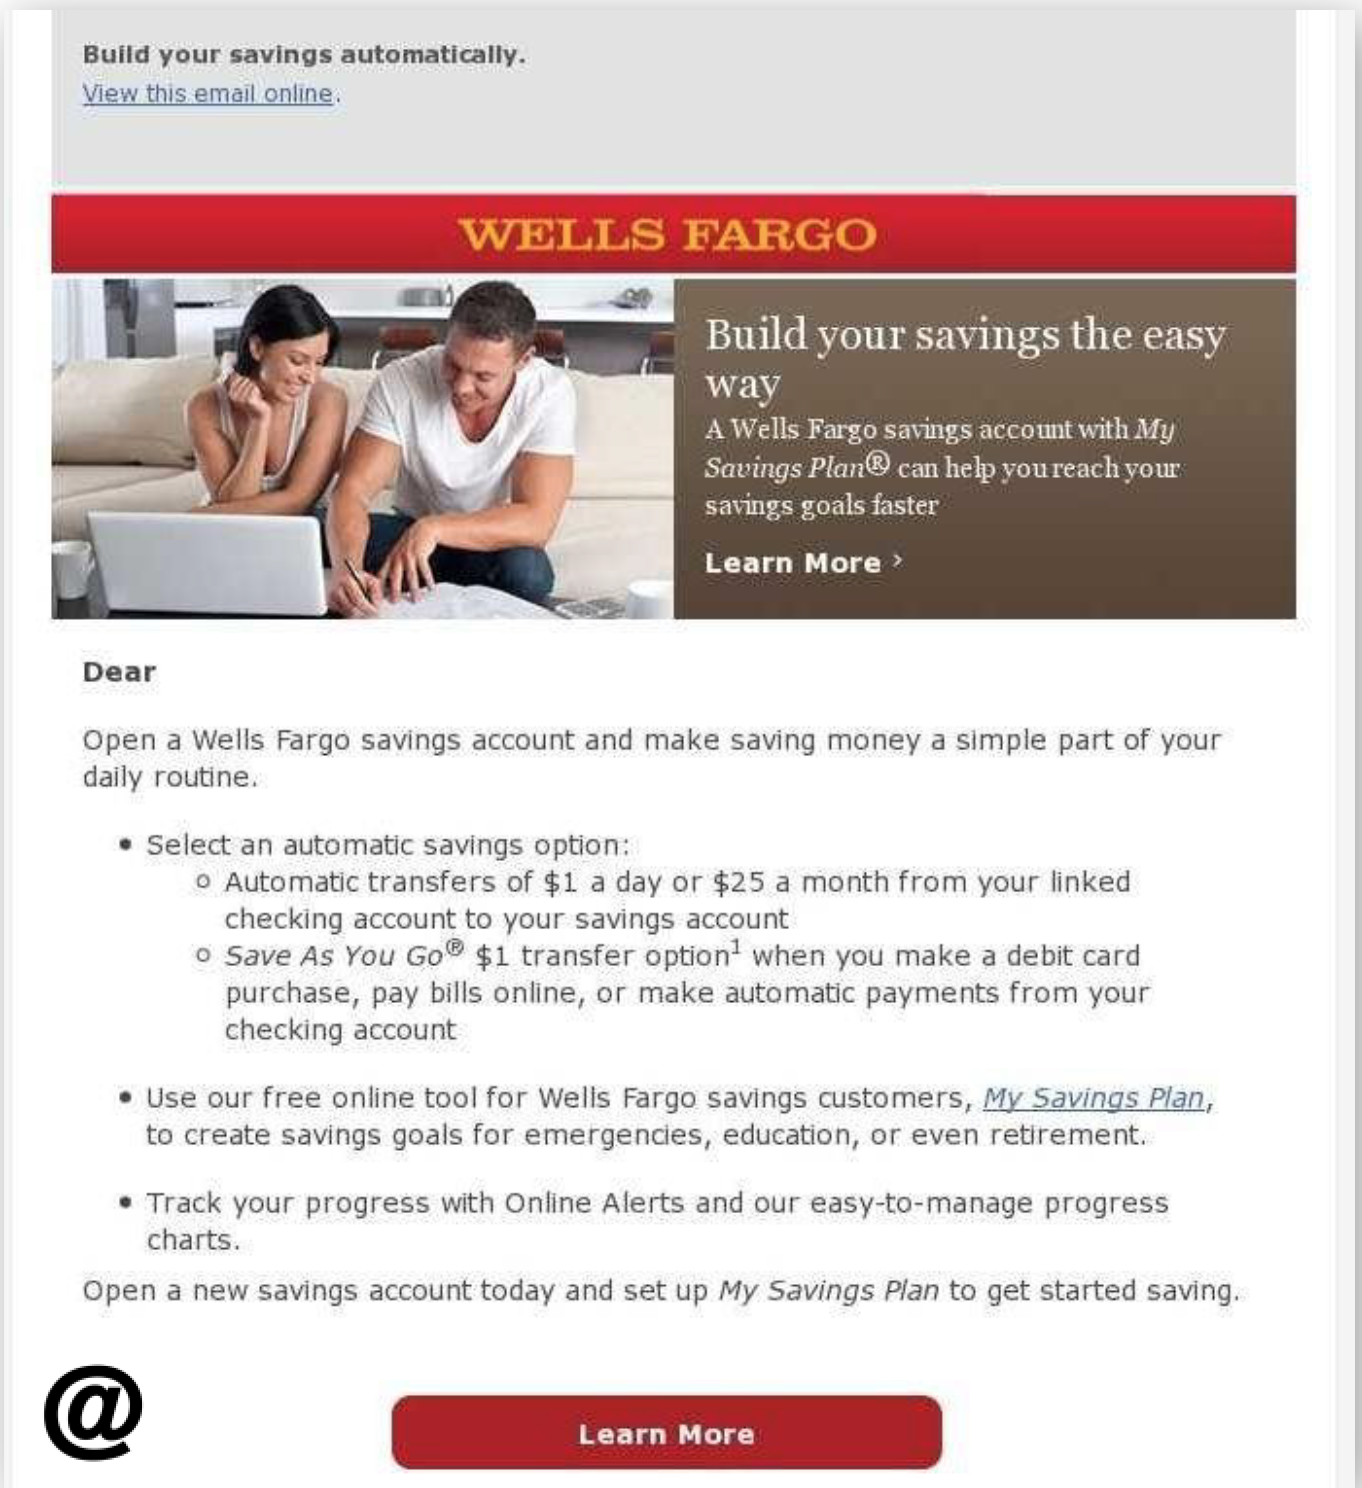 Wells Fargo Automatic Savings Crosssell Email How To Write